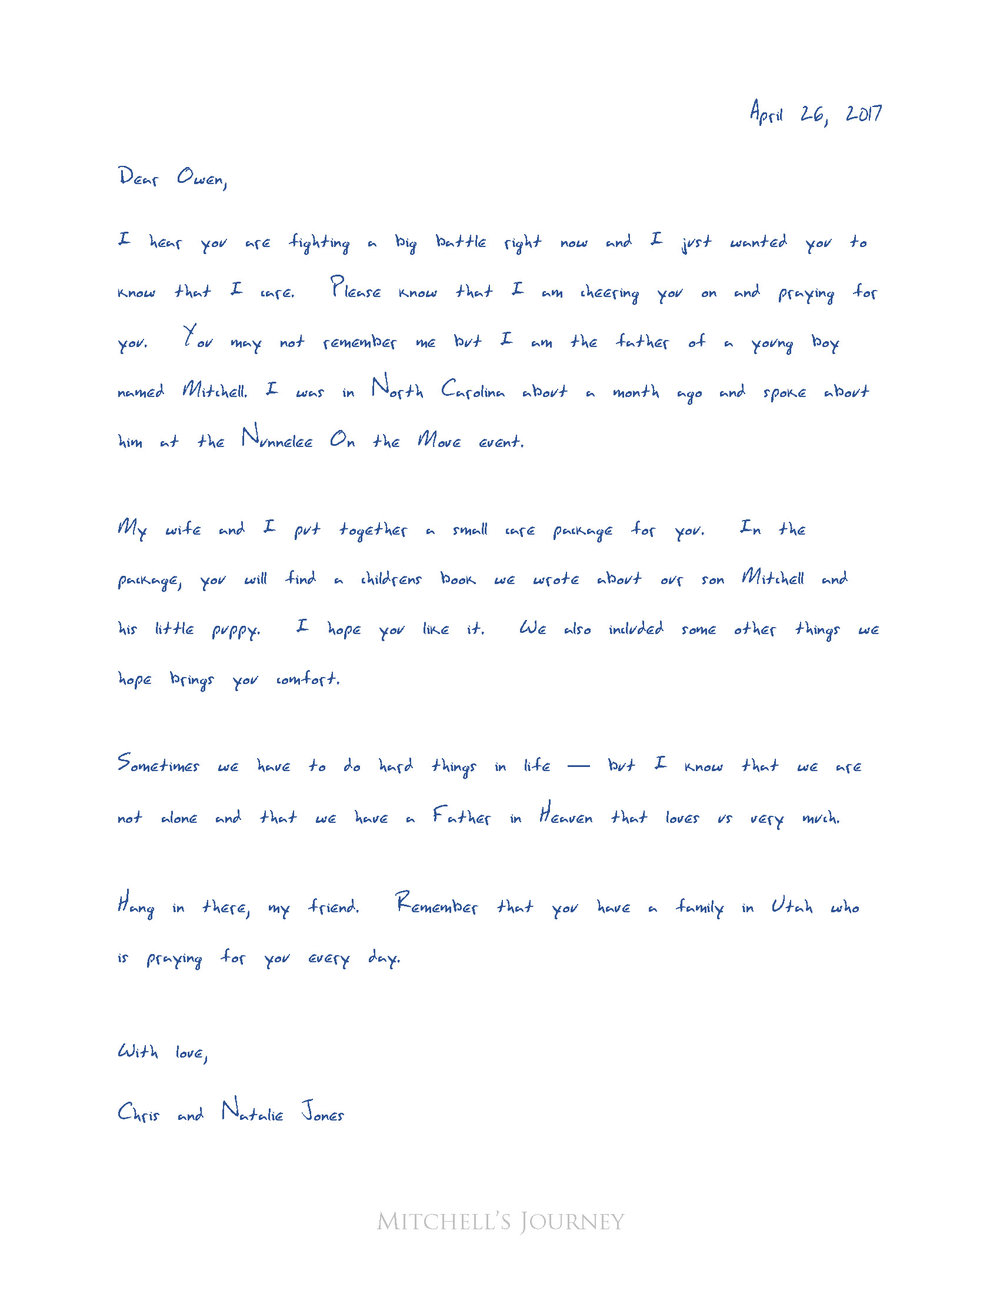 Letter to Owen Preston.jpg